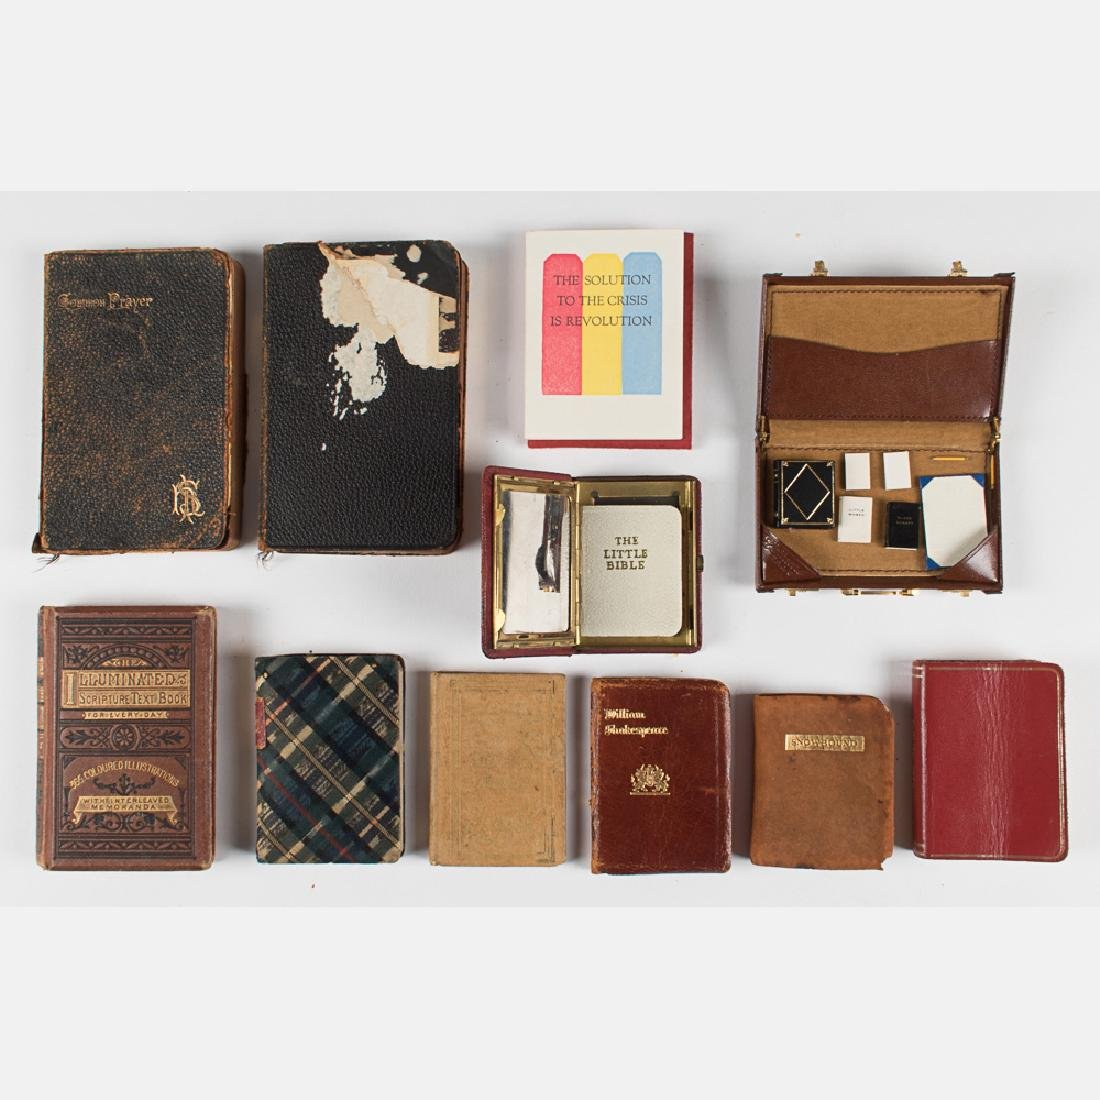 A Collection of Ten Miniature Books, 19th/20th Century,